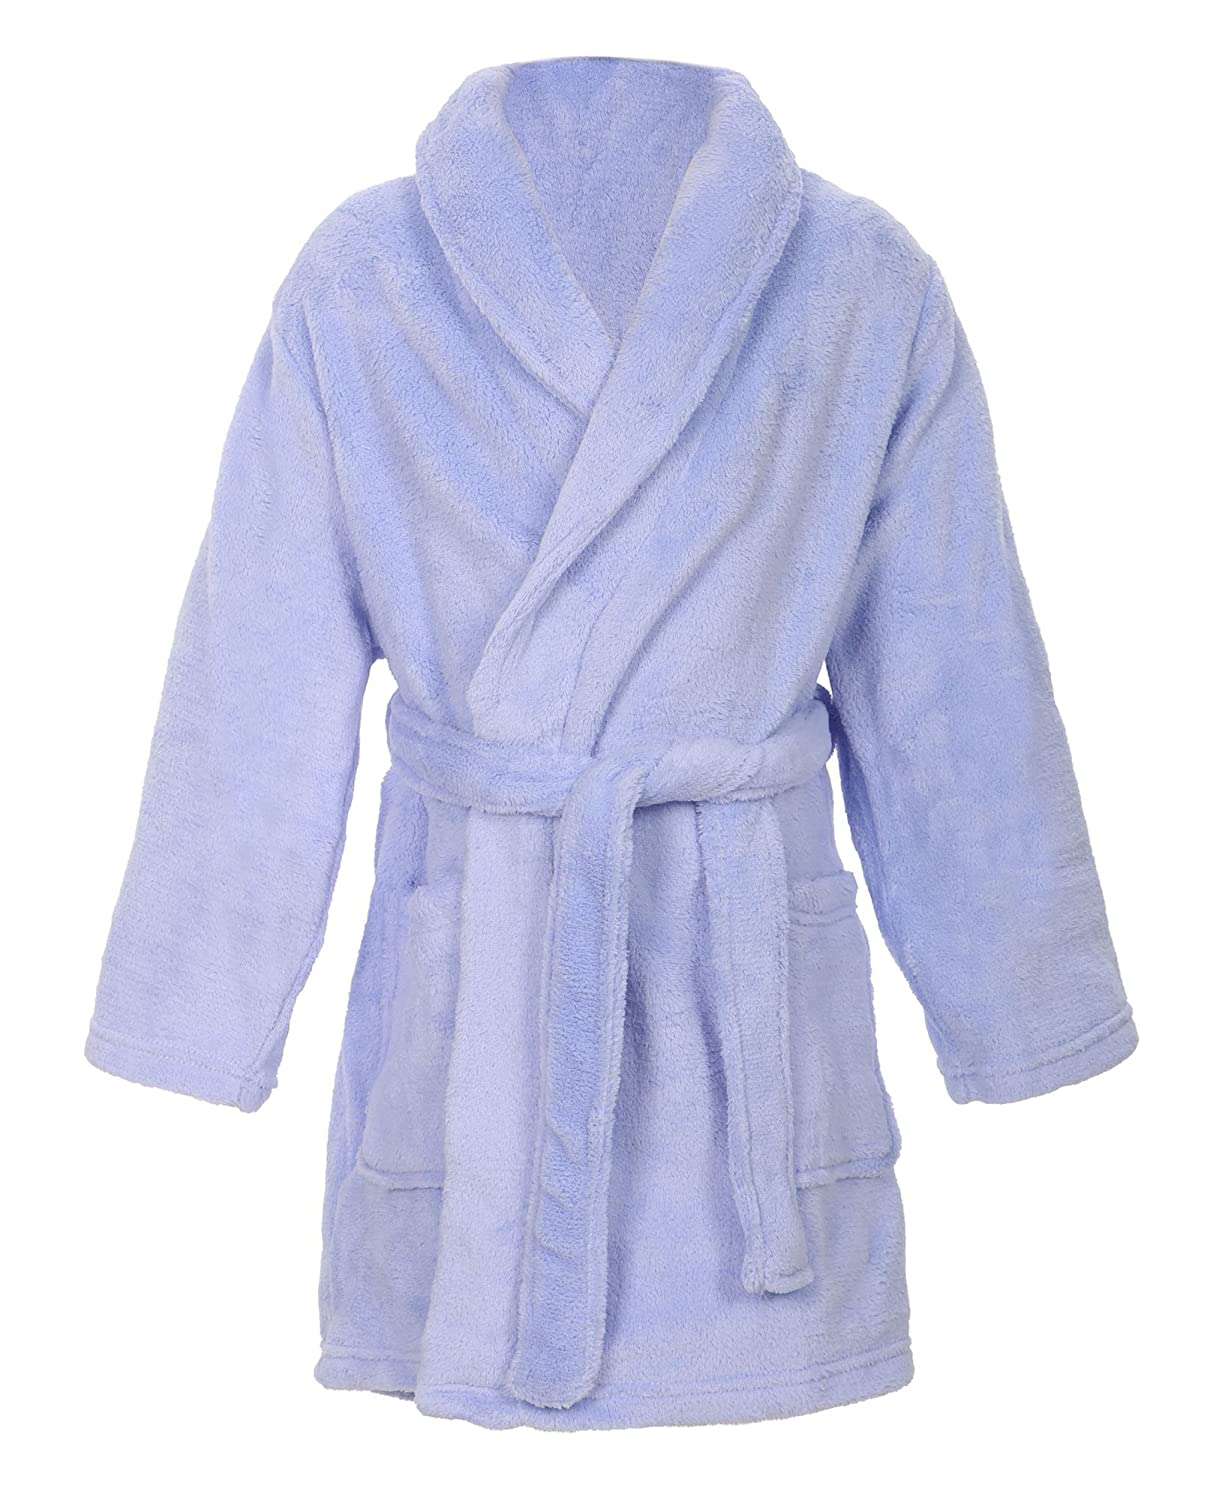 Simplicity Kid's Soft Plush Bathrobe Robe with Long Sleeve, Pockets GP15100042